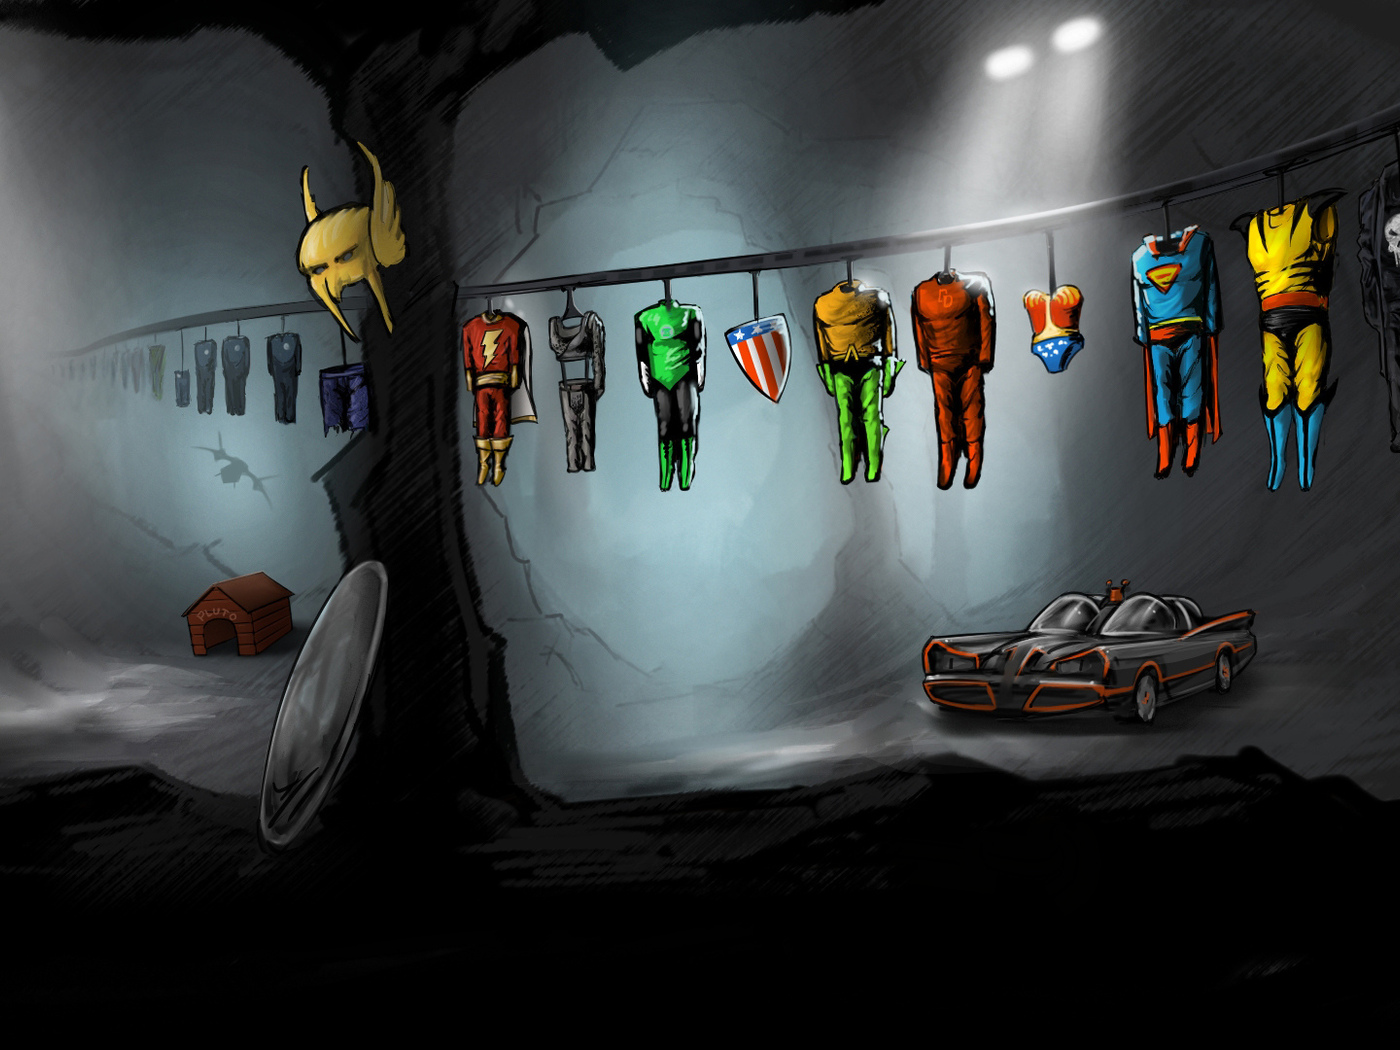 cave, parody, green lantern, batmobile, hiding place of superheroes, costumes, flash